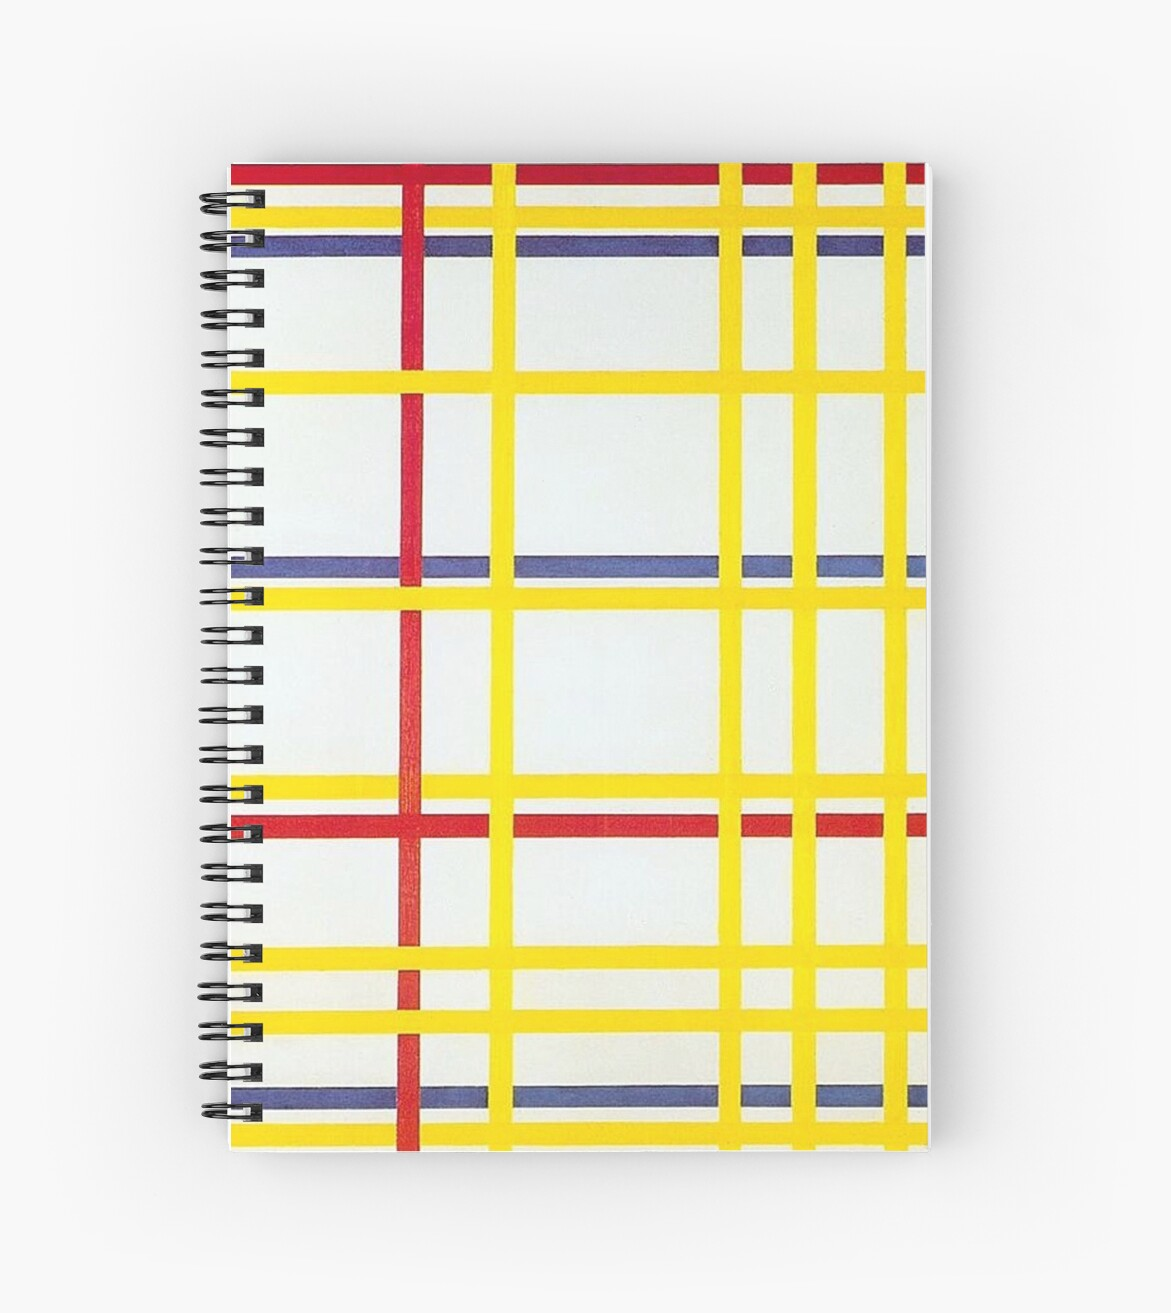 MONDRIAN, New York City I, Piet Mondrian\